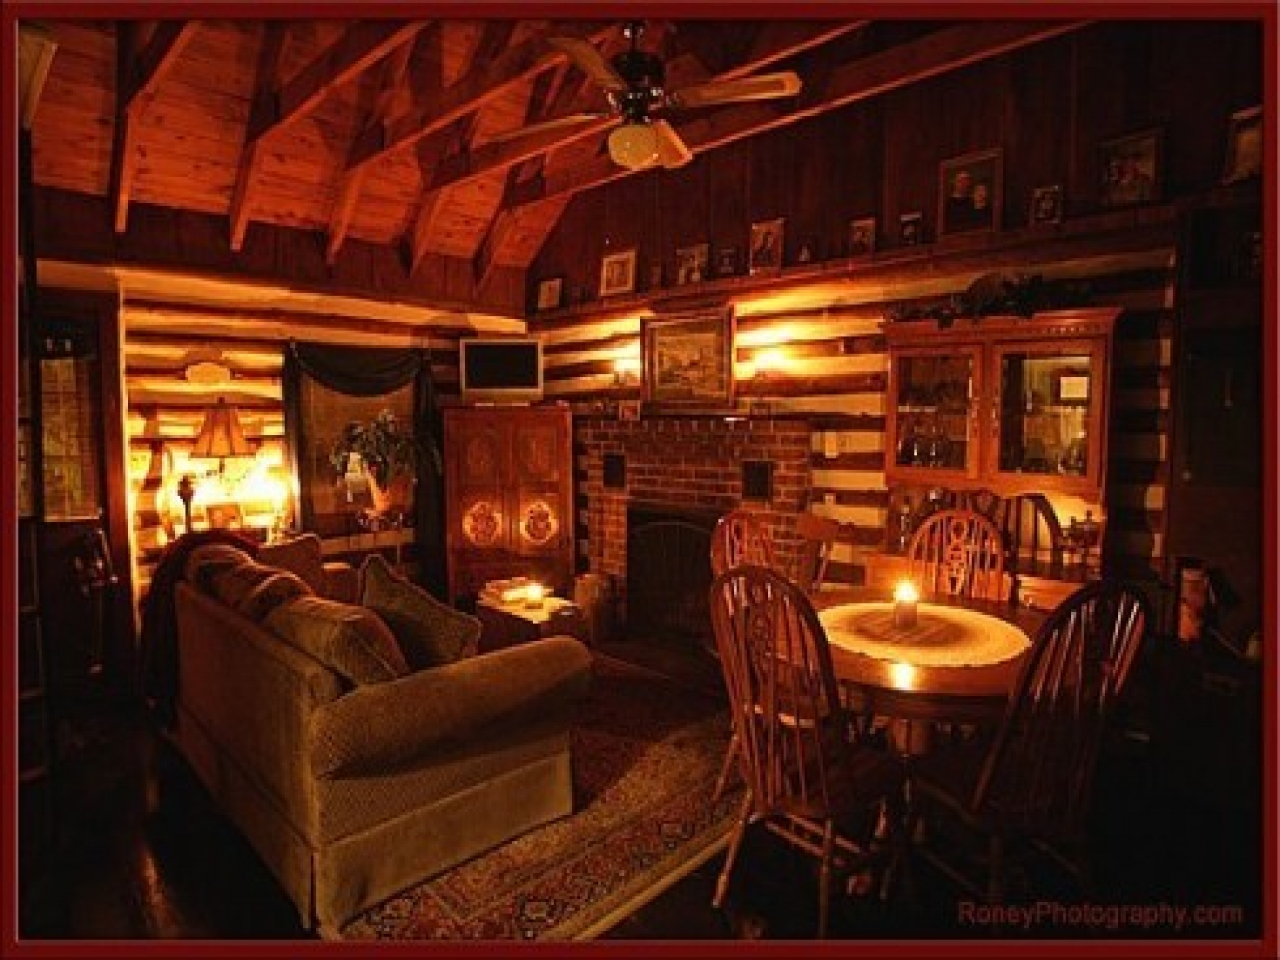 Log cabin home interior luxury log cabin homes small cozy - Interior pictures of small log cabins ...